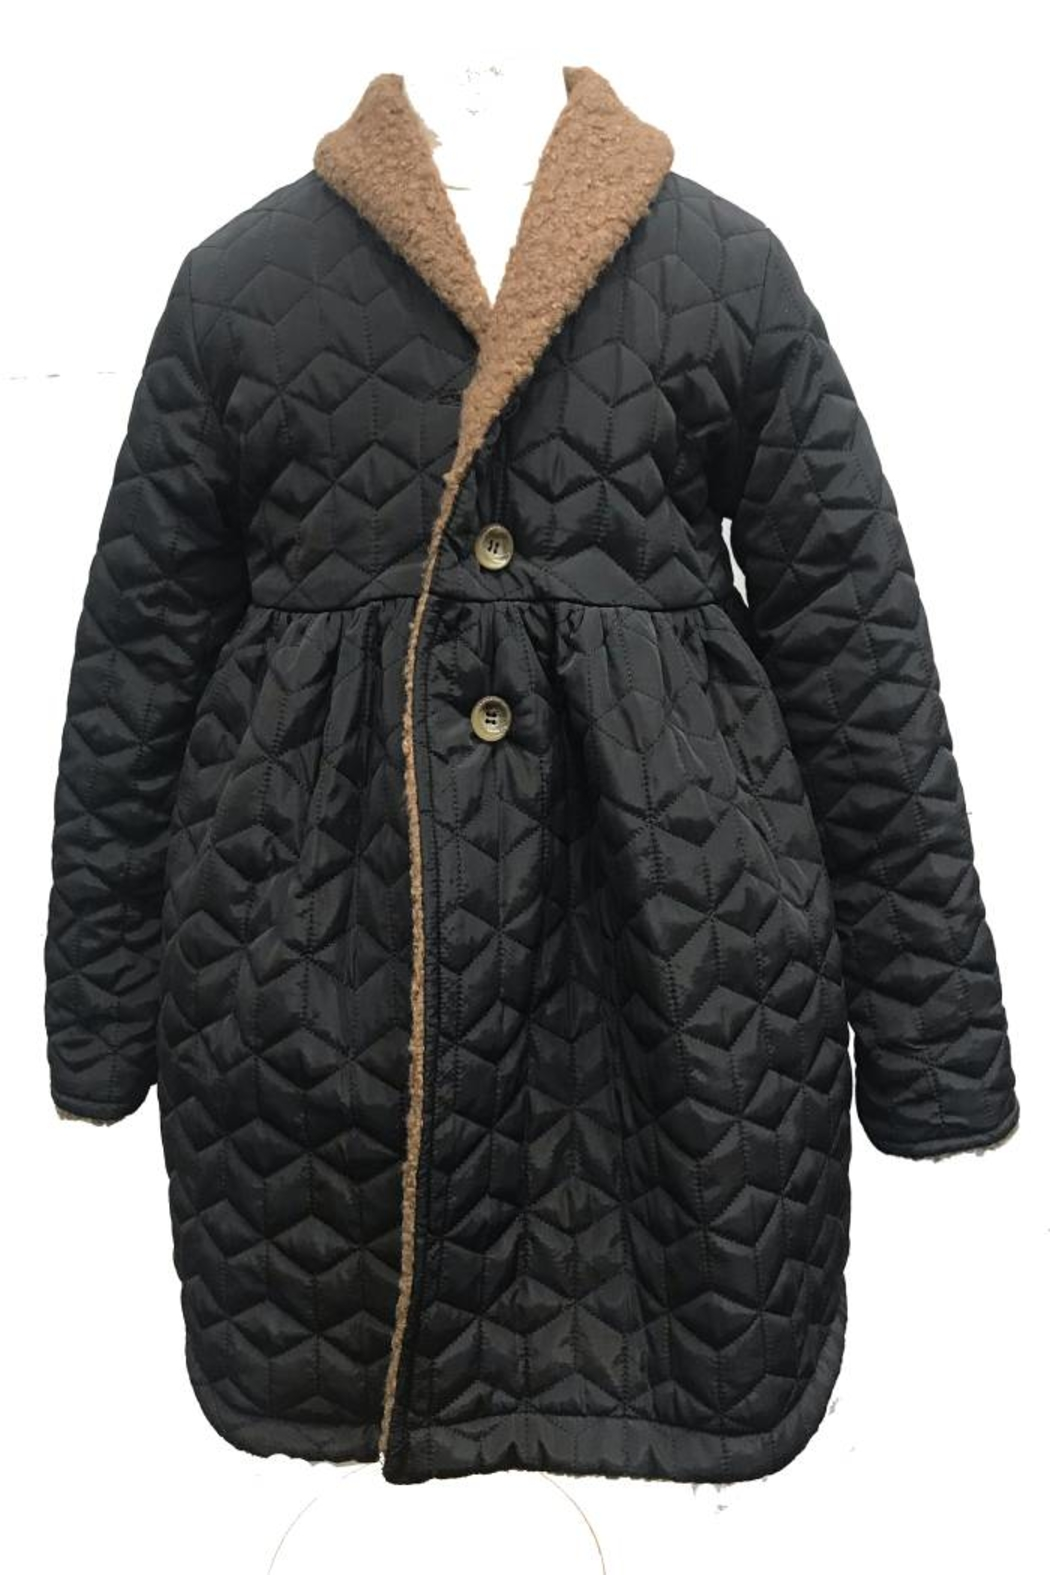 Cocco Rose Reversible Coat for Girls | Dual Way Wearable | Soft & Comfy | Winter Jacket - Main Image